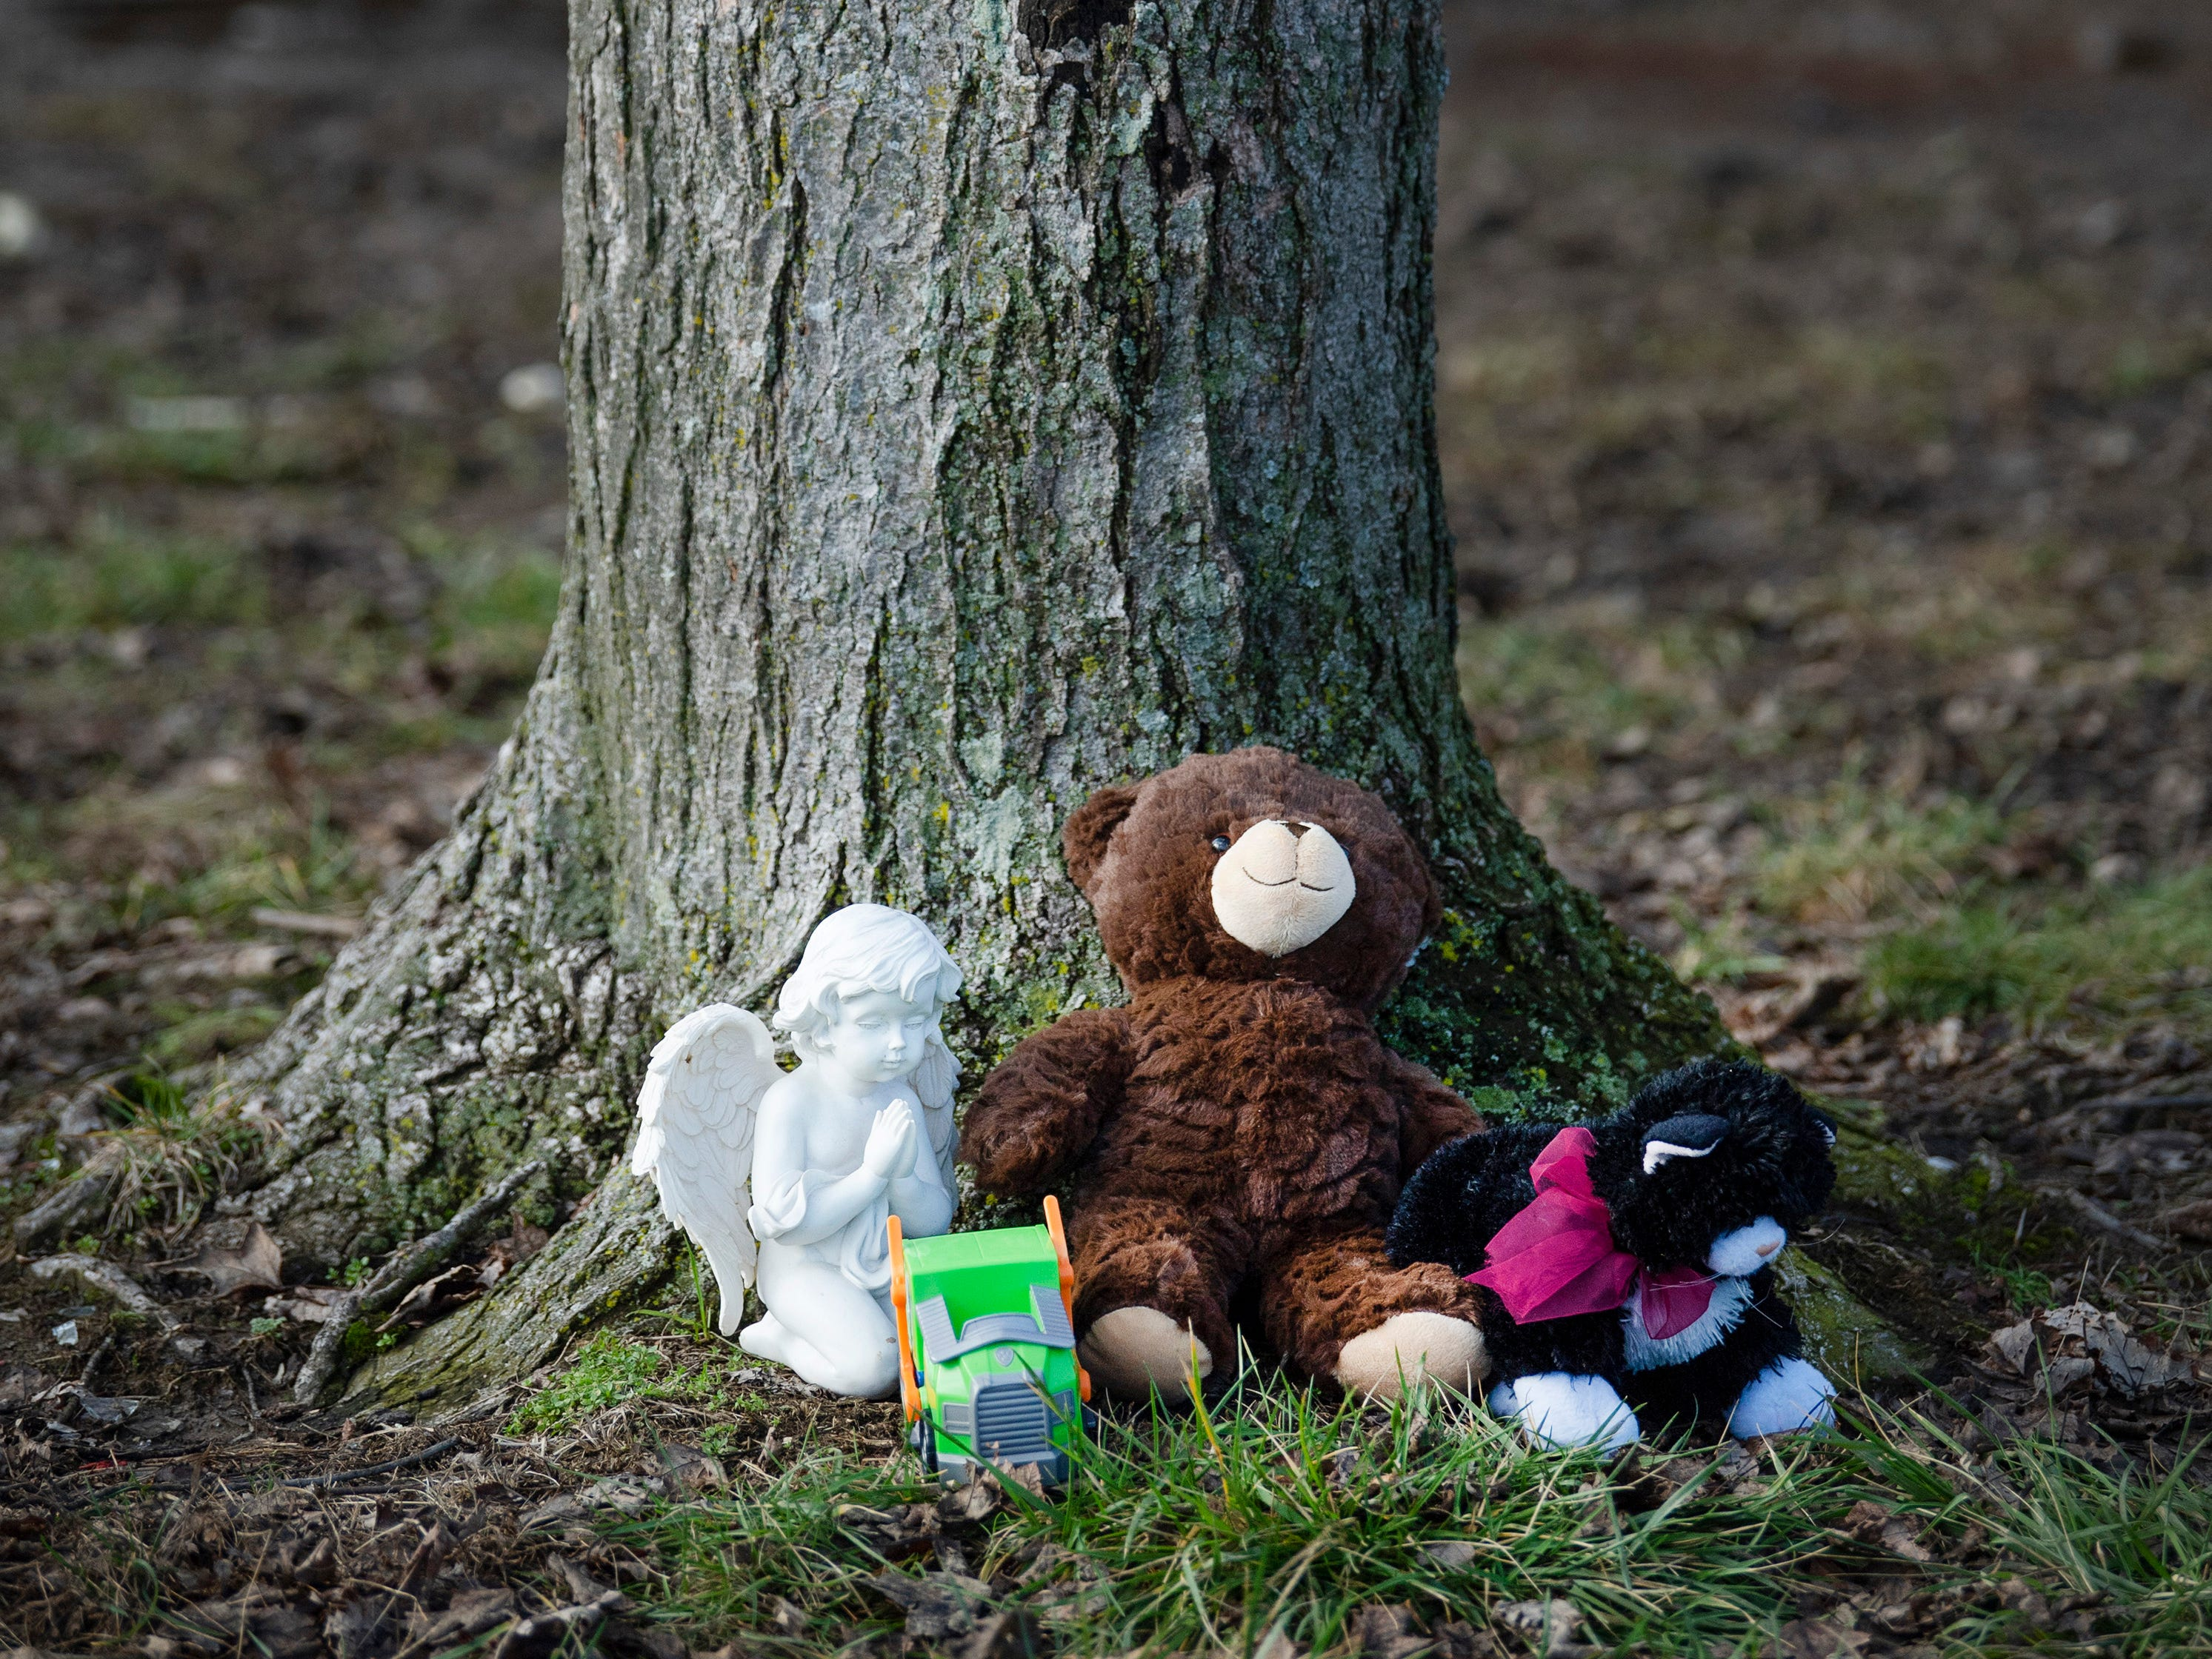 A small memorial below the police tape was started outside the home where three children were killed by fire early Friday morning. Danielle Plock Sims, 11, Thomas Plock Sims, 6, and Roseanna Plock Sims, 3, were all siblings. Their mother, Selina Applegate, and two of her other children escaped with non life-threatening injuries.